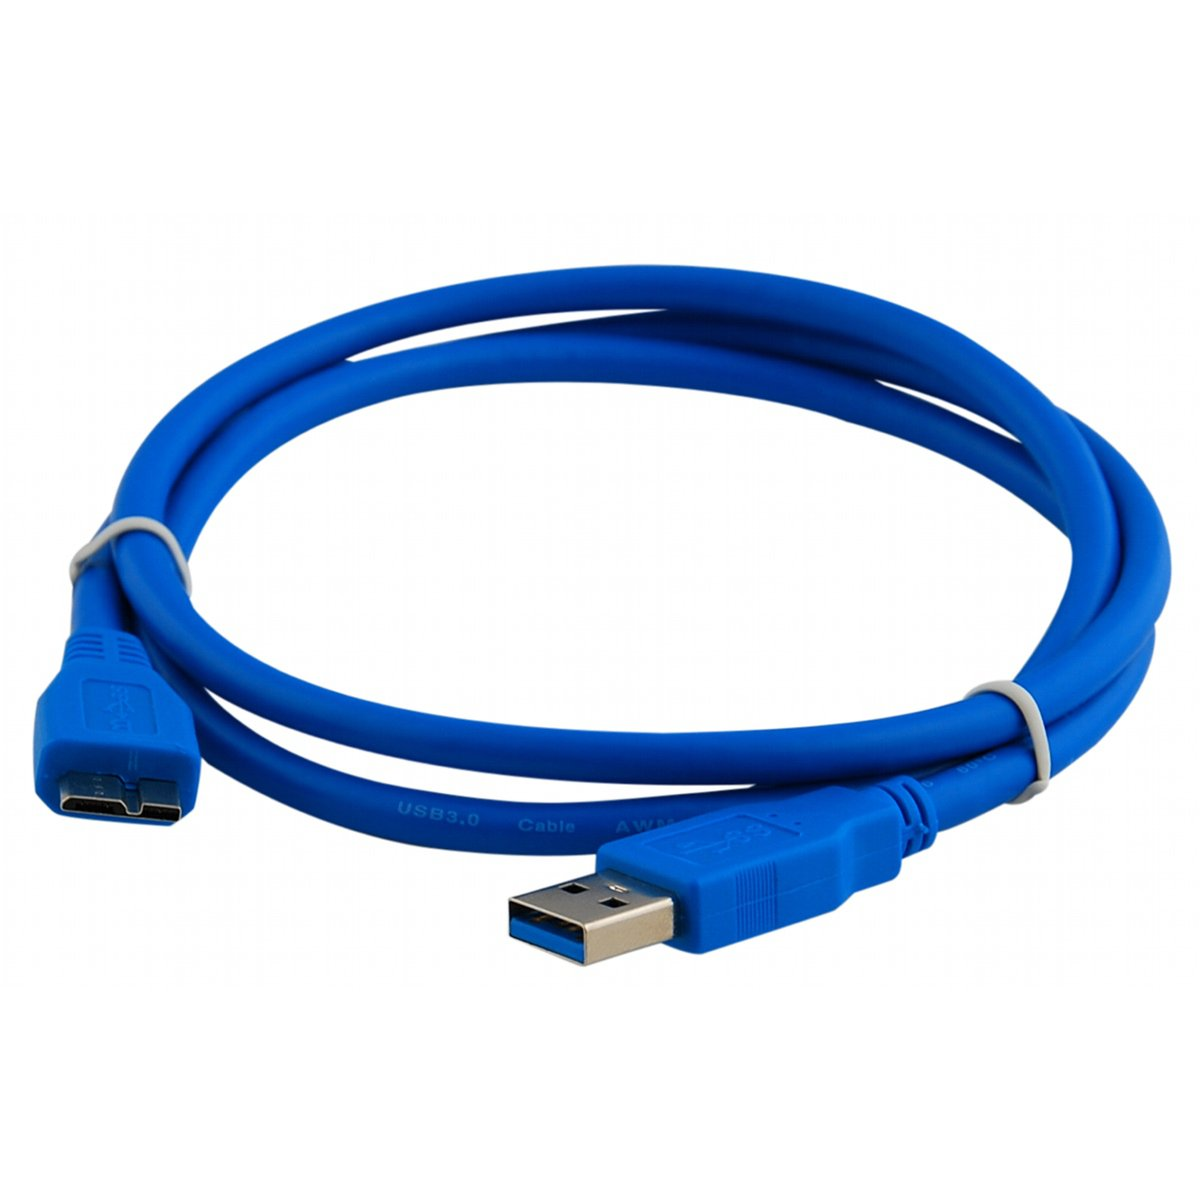 Premium Quality Blue 3FT 3Feet USB 3.0 A Male to Micro B Male Cable